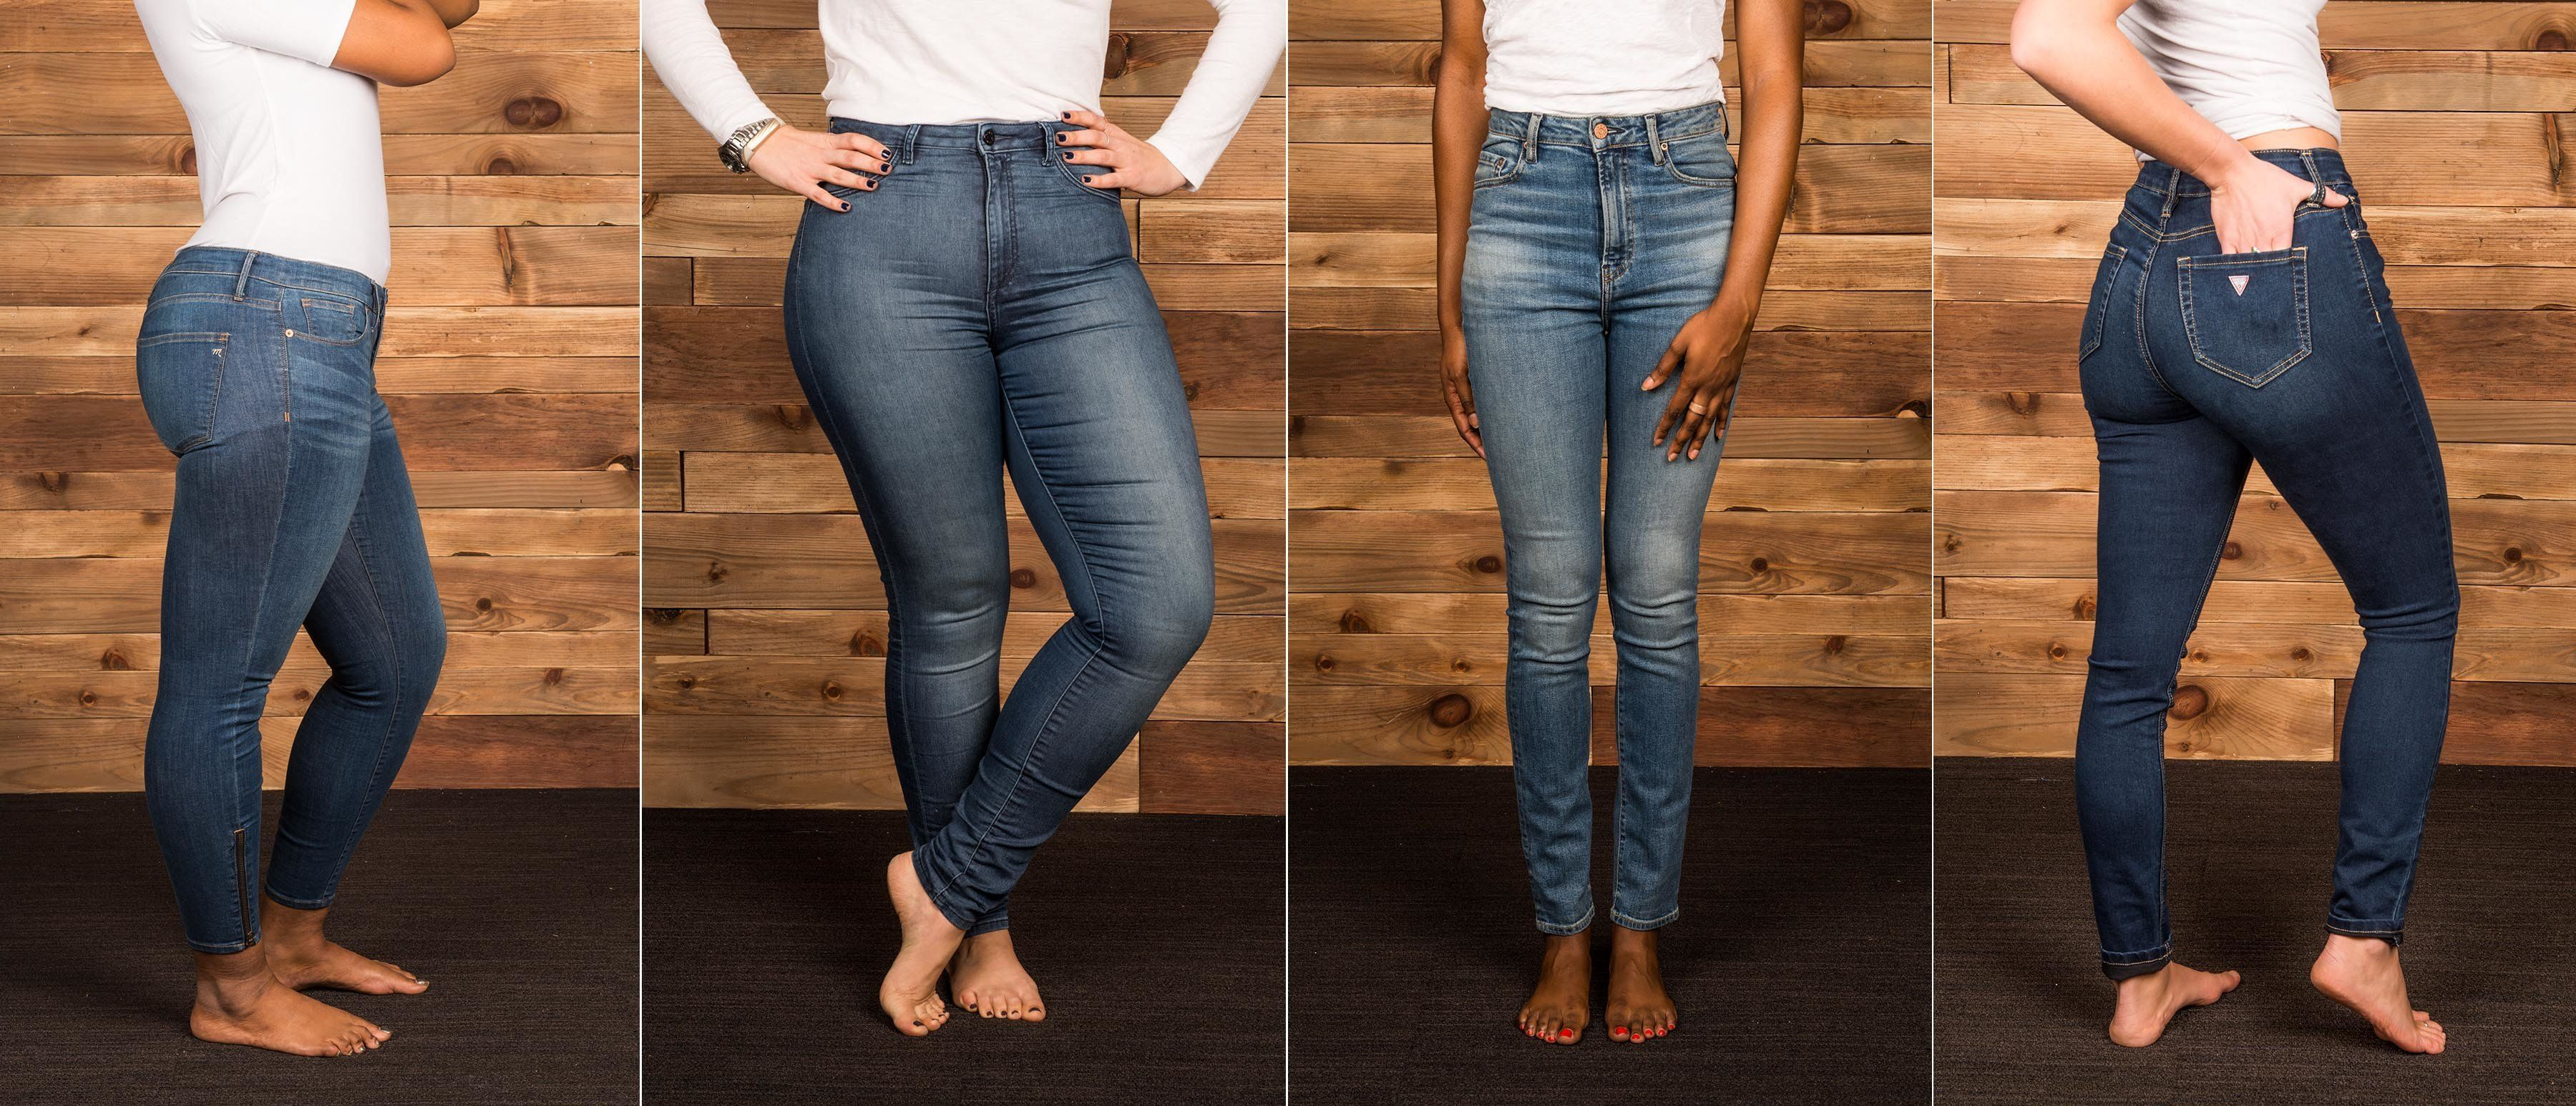 Skinny jeans don't look good